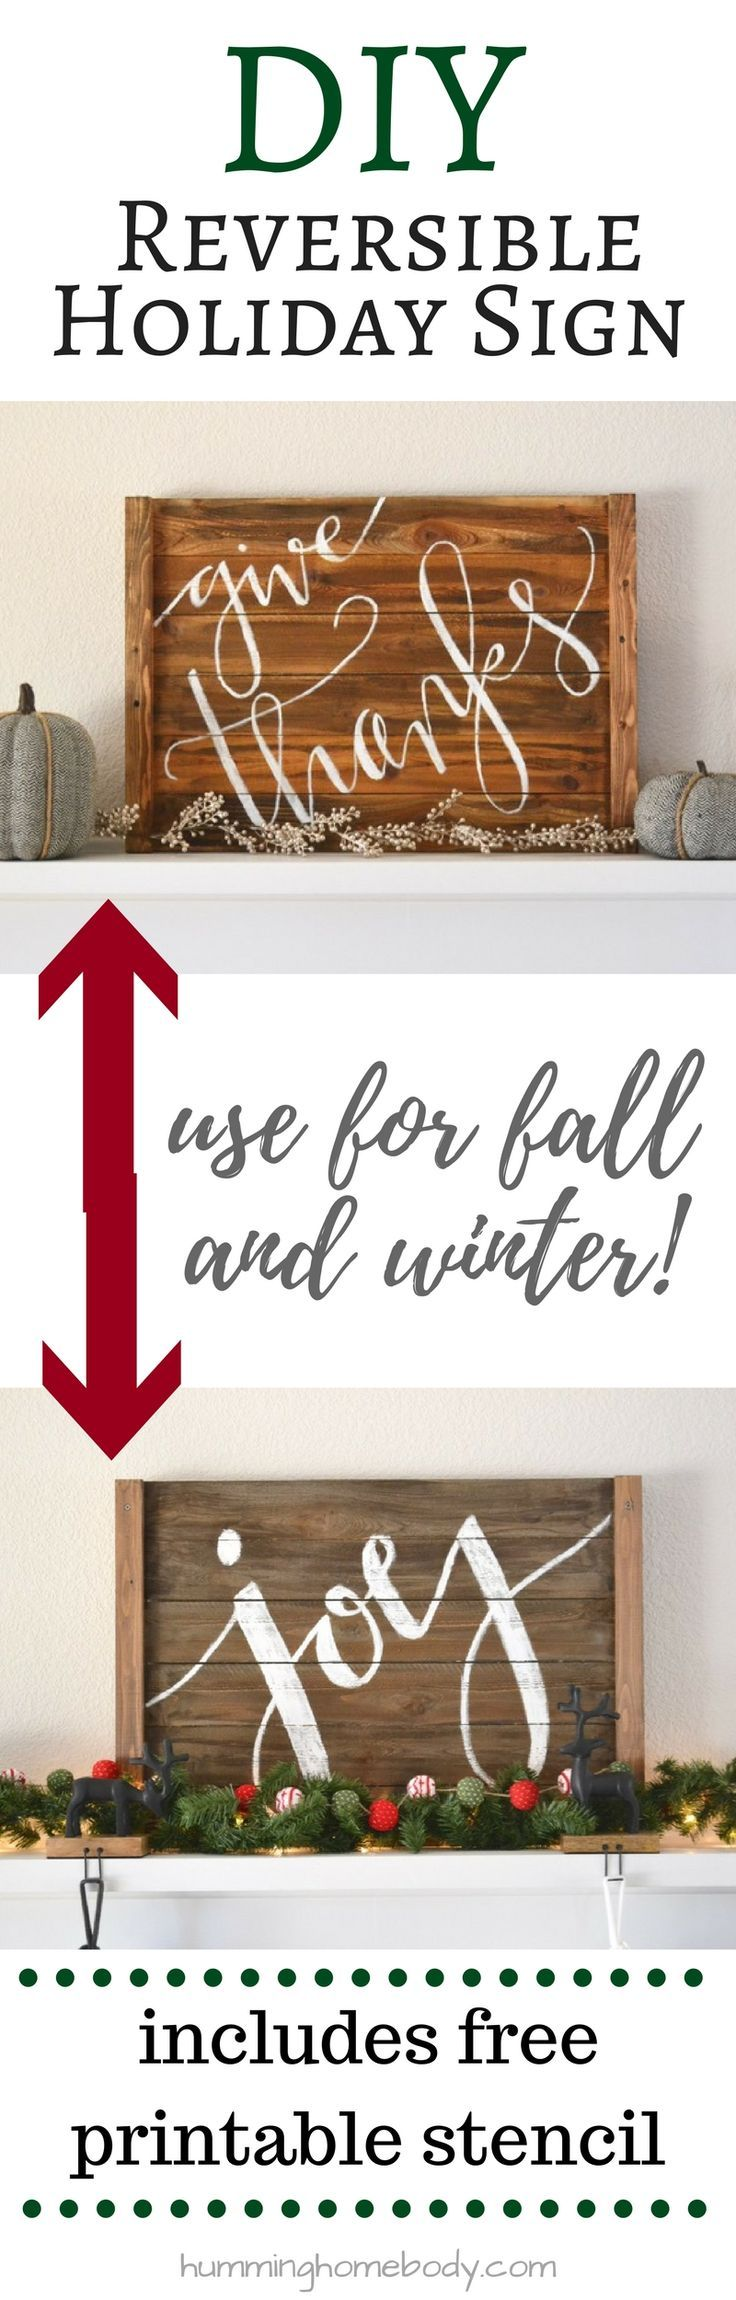 Best 25 free printable stencils ideas on pinterest free diy this rustic wood holiday sign for your wall or mantel it is reversible so amipublicfo Gallery